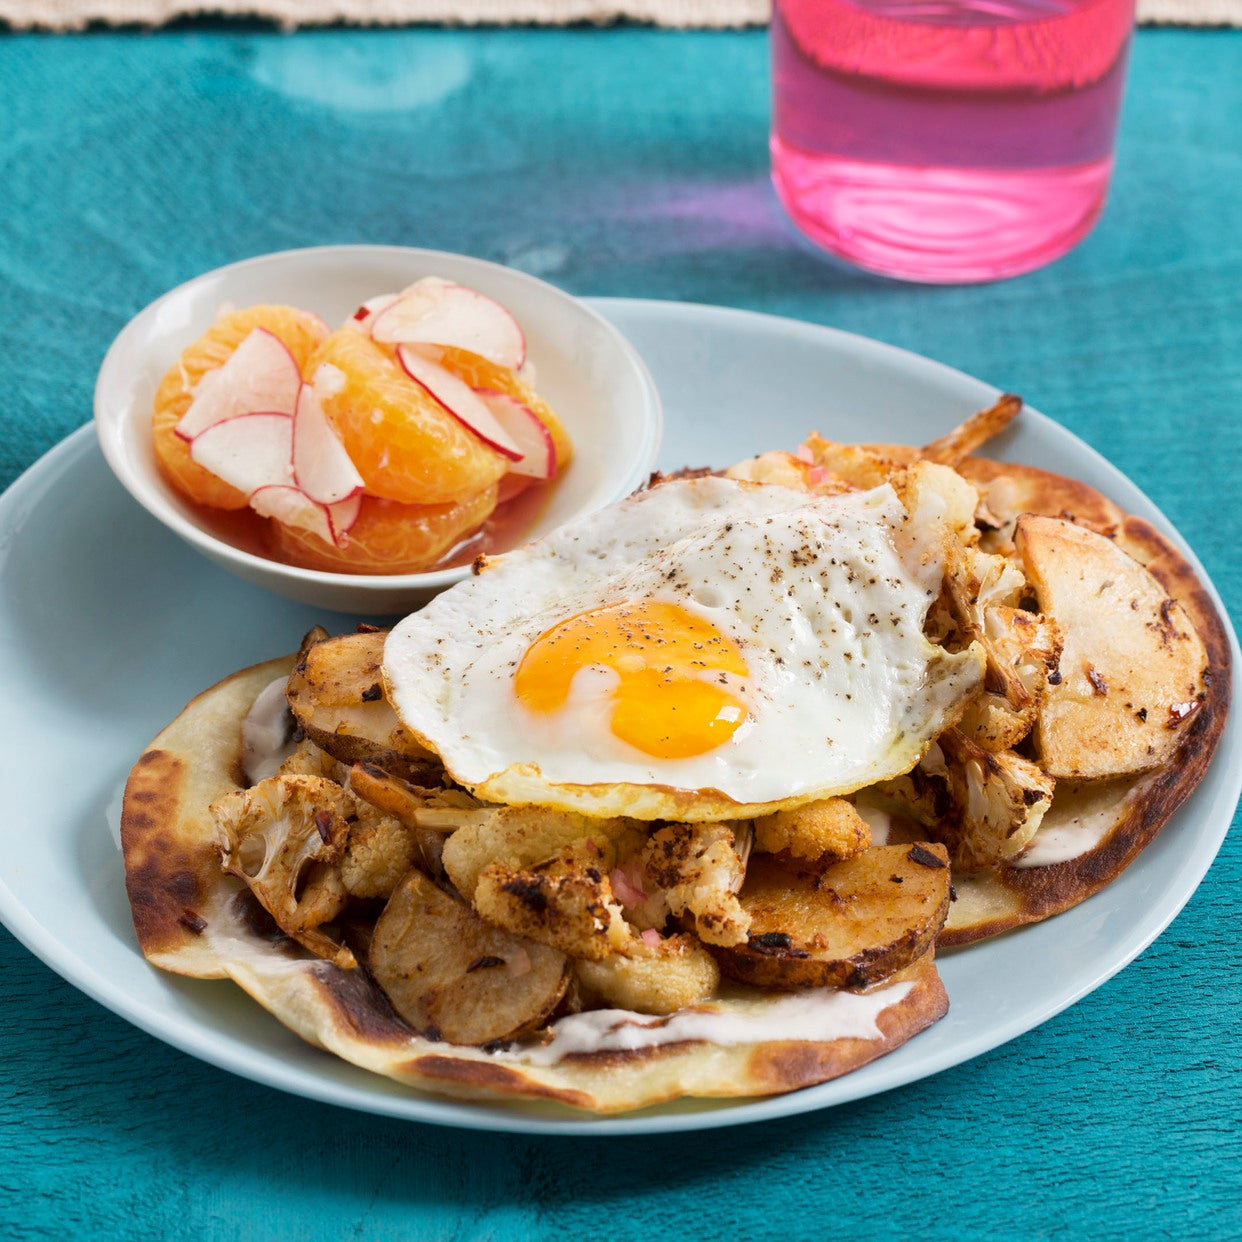 Spicy Cauliflower, Potato & Egg Tostadas with Marinated Radishes & Satsuma Mandarin